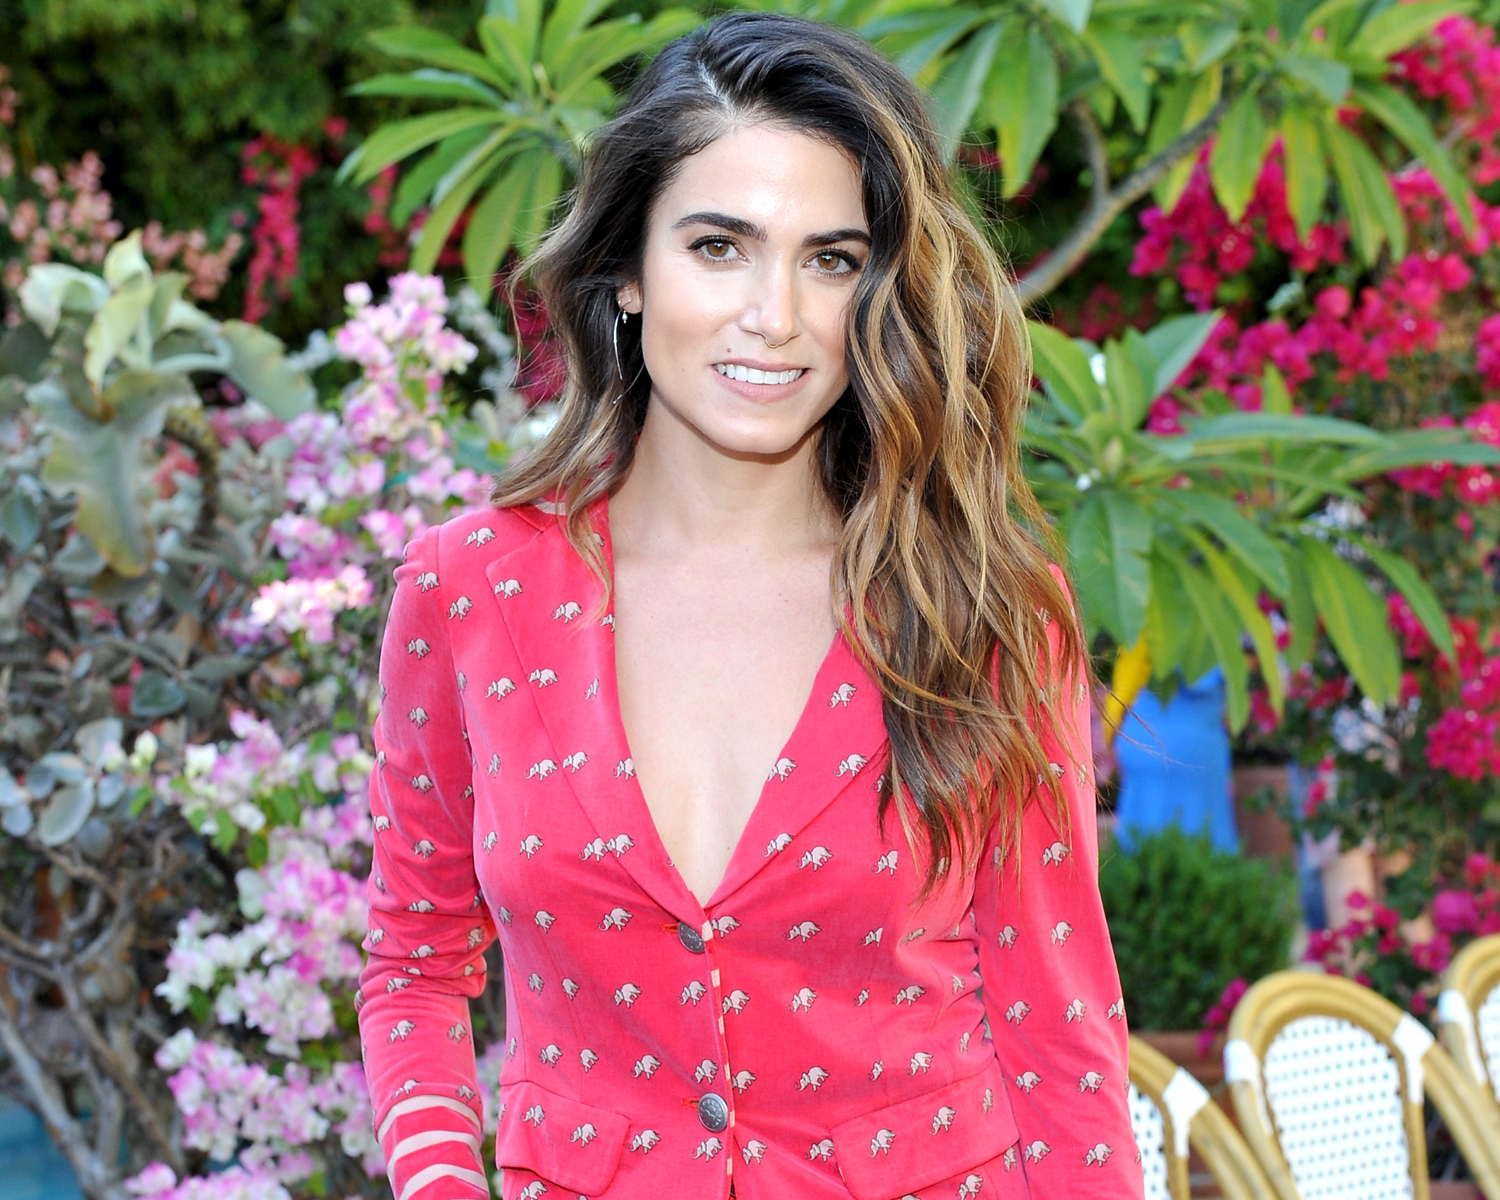 Exclusive: Nikki Reed on Why Husband Ian Somerhalder Will Redesign Her Engagement Ring